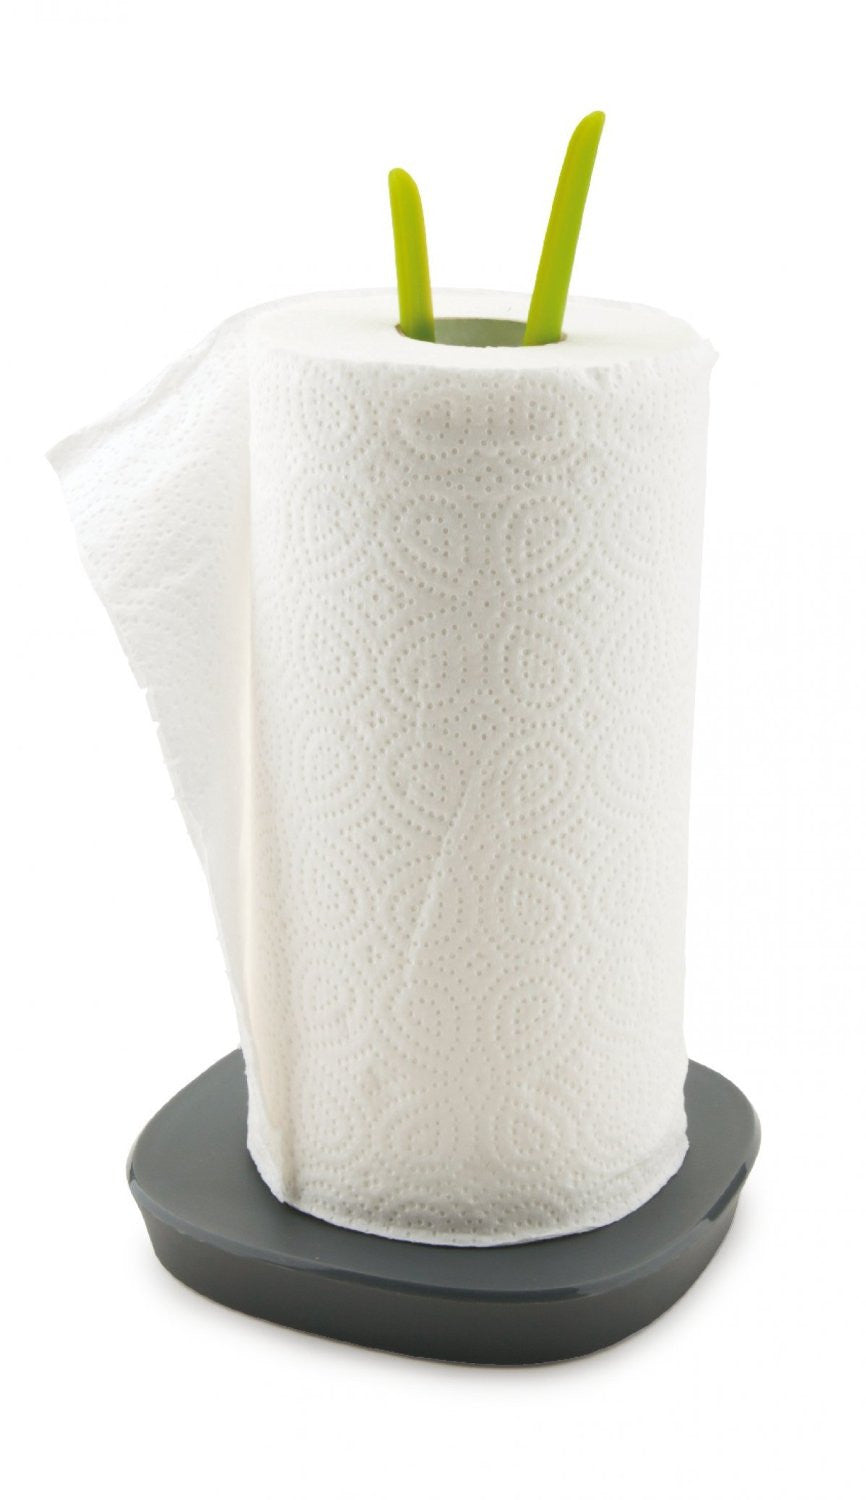 Vialli Design Kitchen Towel Roll Holder Green Designer Homeware Ltd